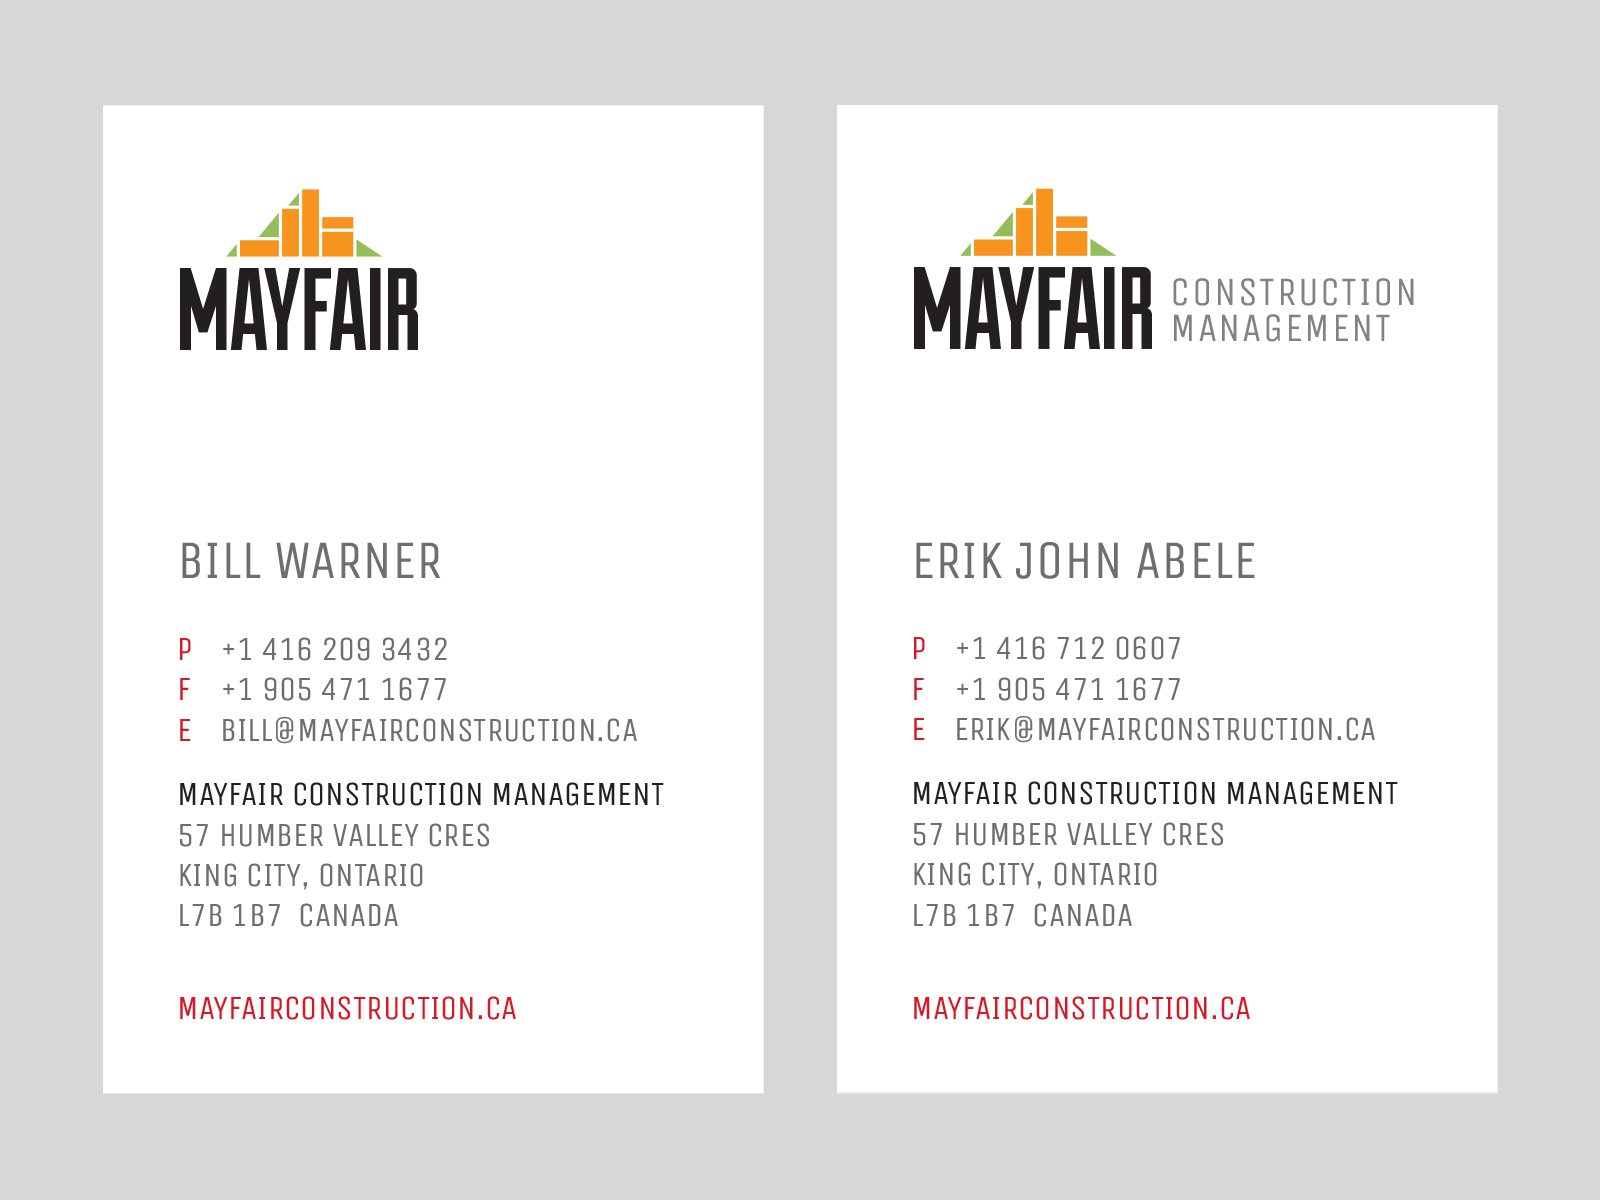 Business cards for Mayfair Construction Management